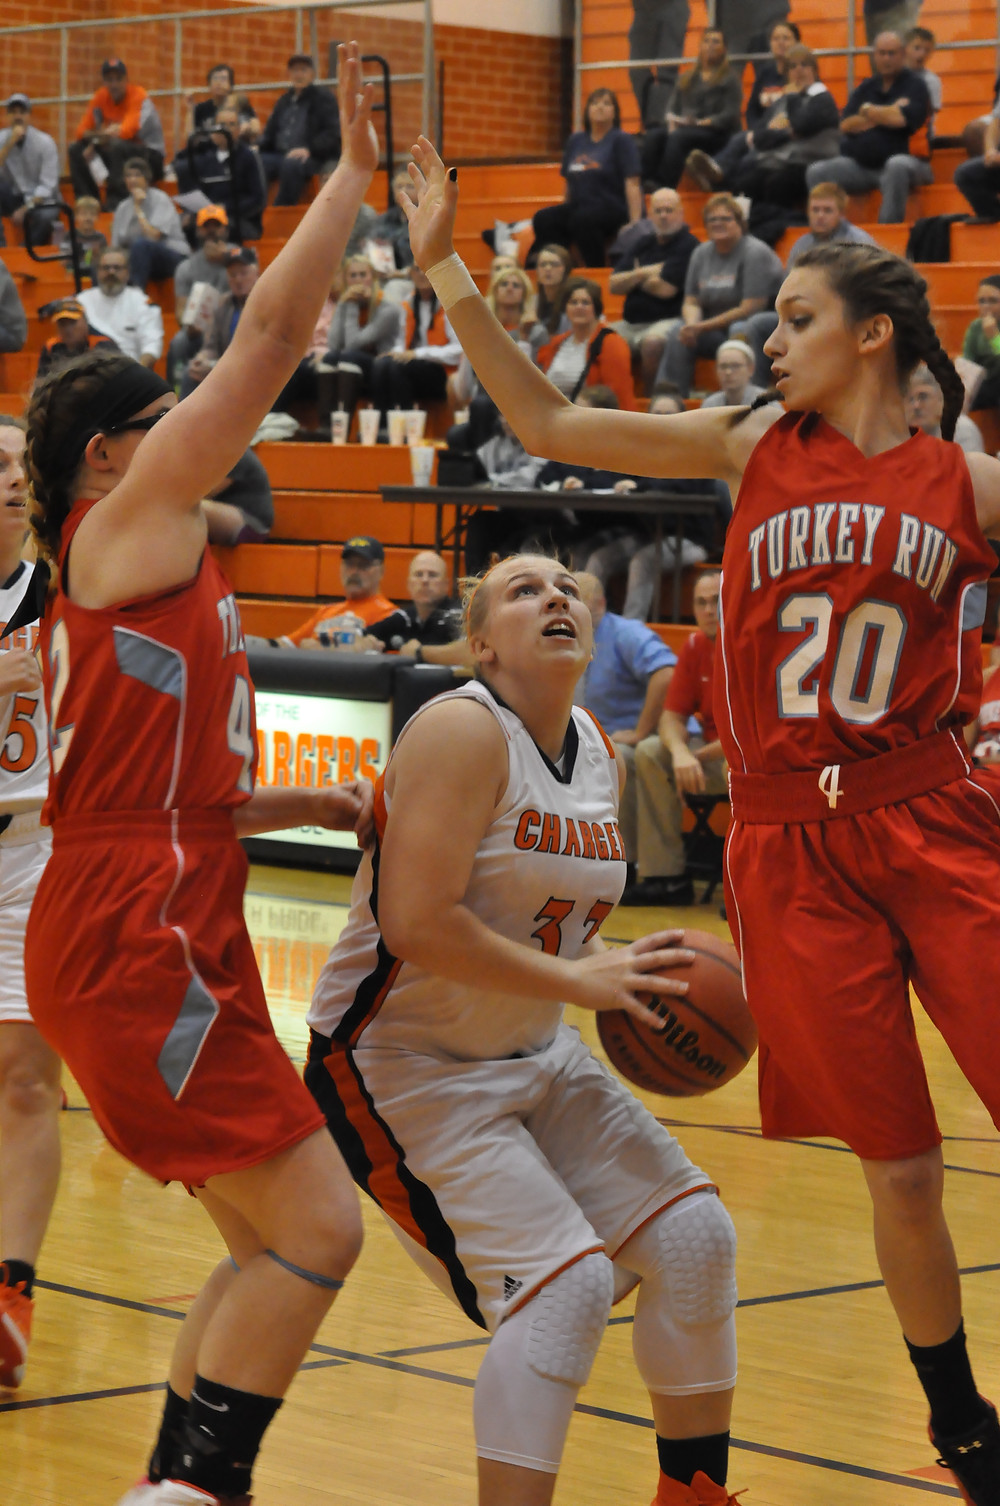 Becca Adams scored a game-high 20 points for the Chargers on Friday.